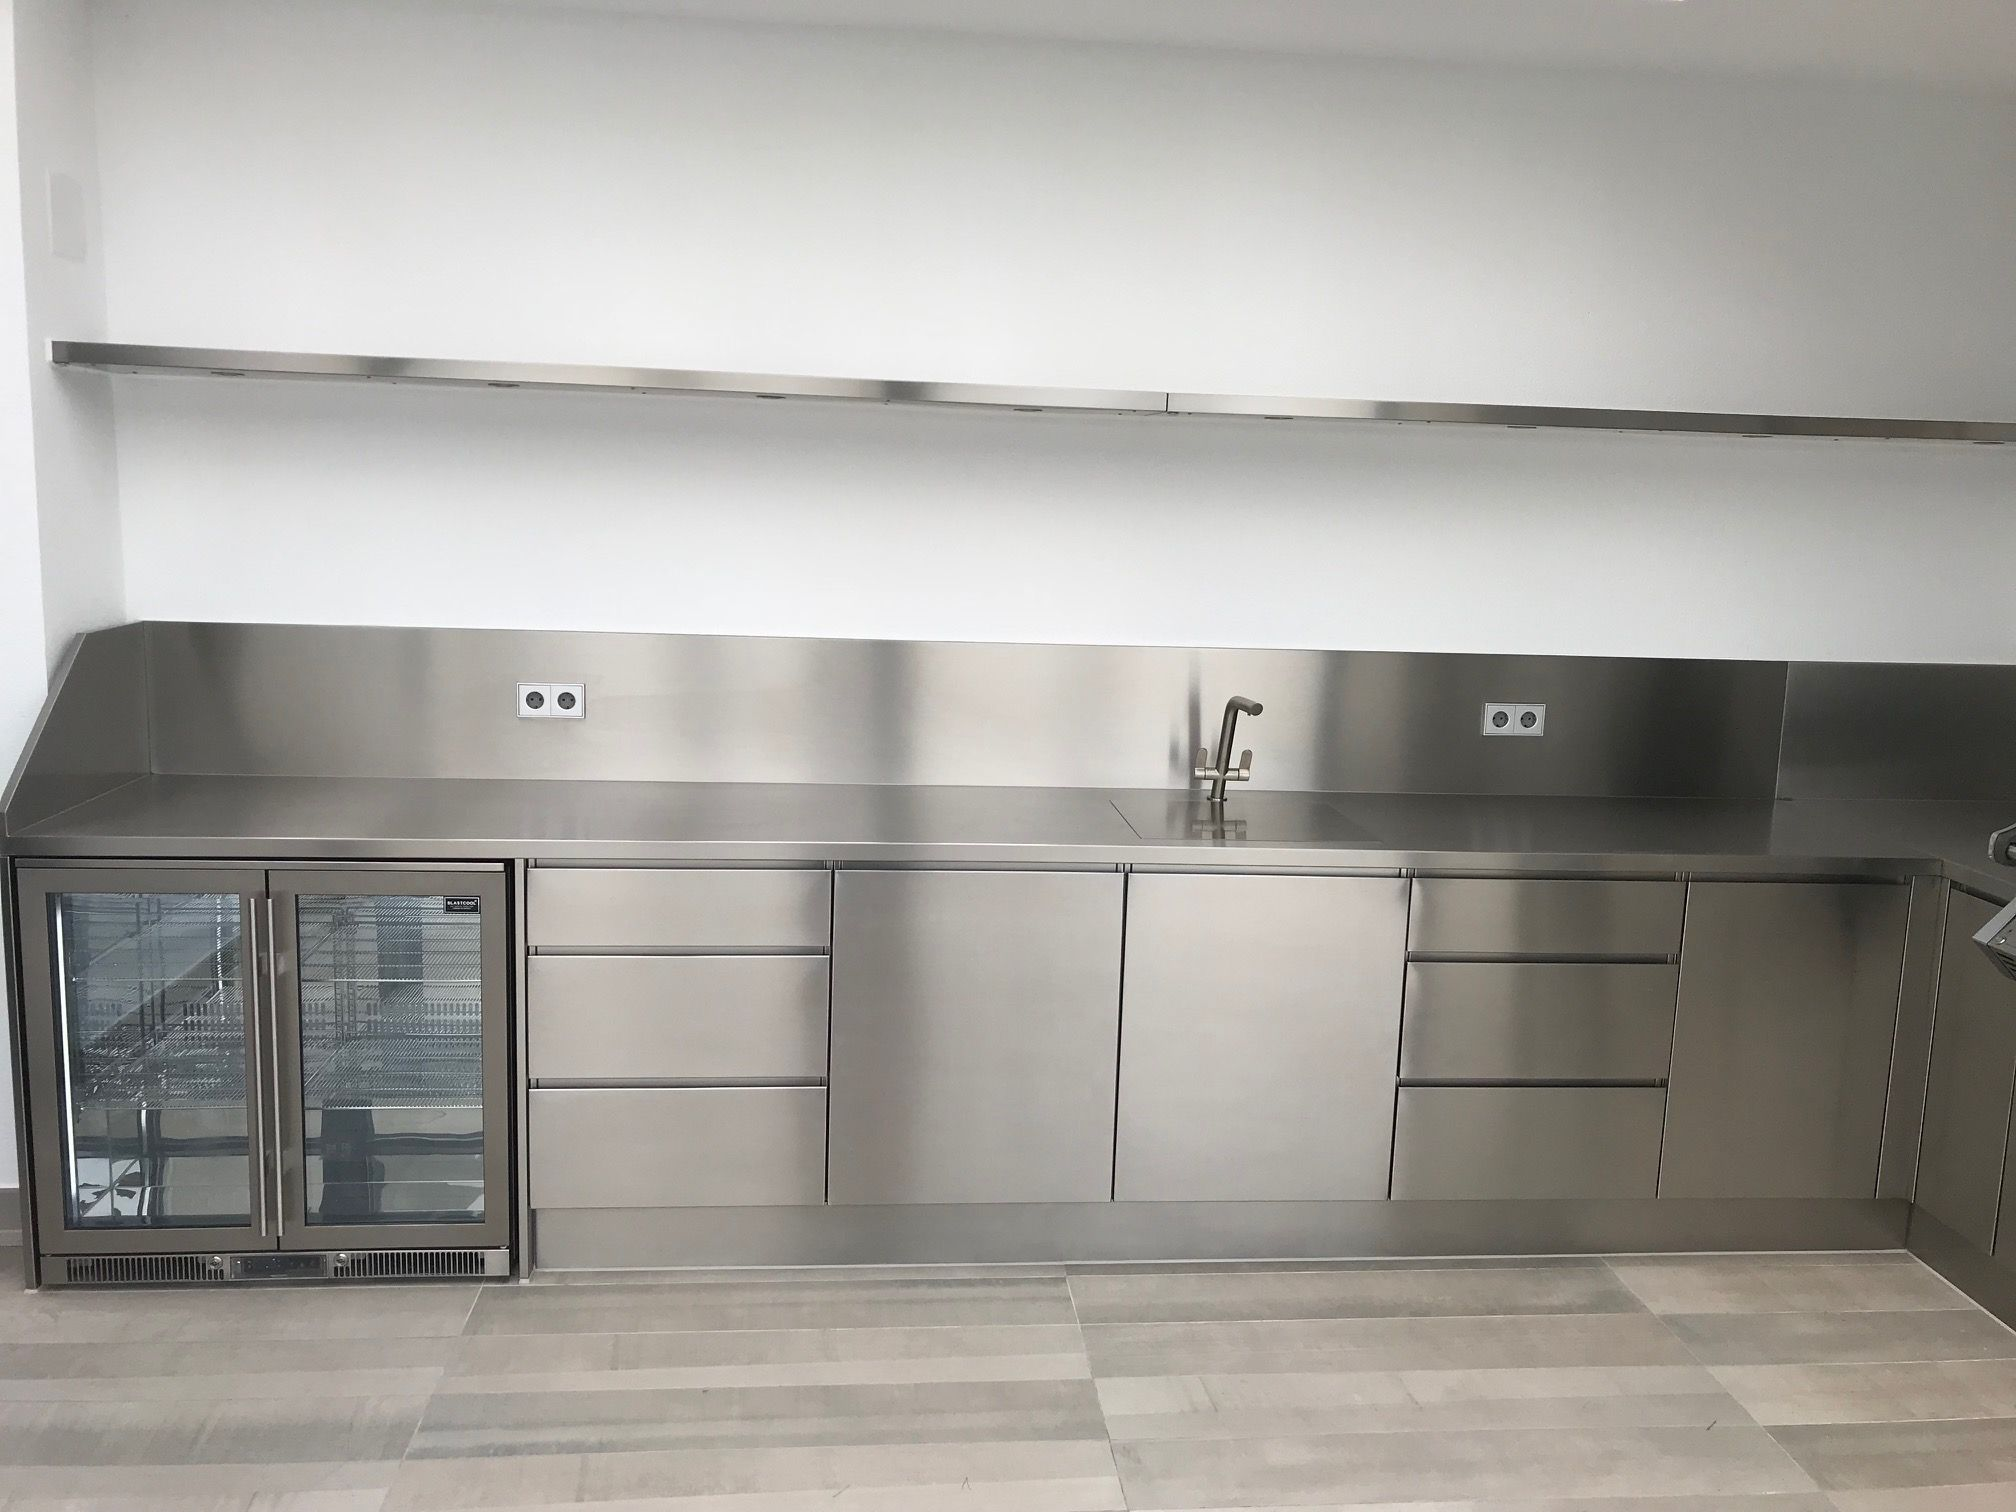 Stainless Steel Handleless Design Outdoor Kitchen Recently Manufactured For O Outdoor Kitchen Cabinets Stainless Steel Kitchen Stainless Steel Kitchen Cabinets